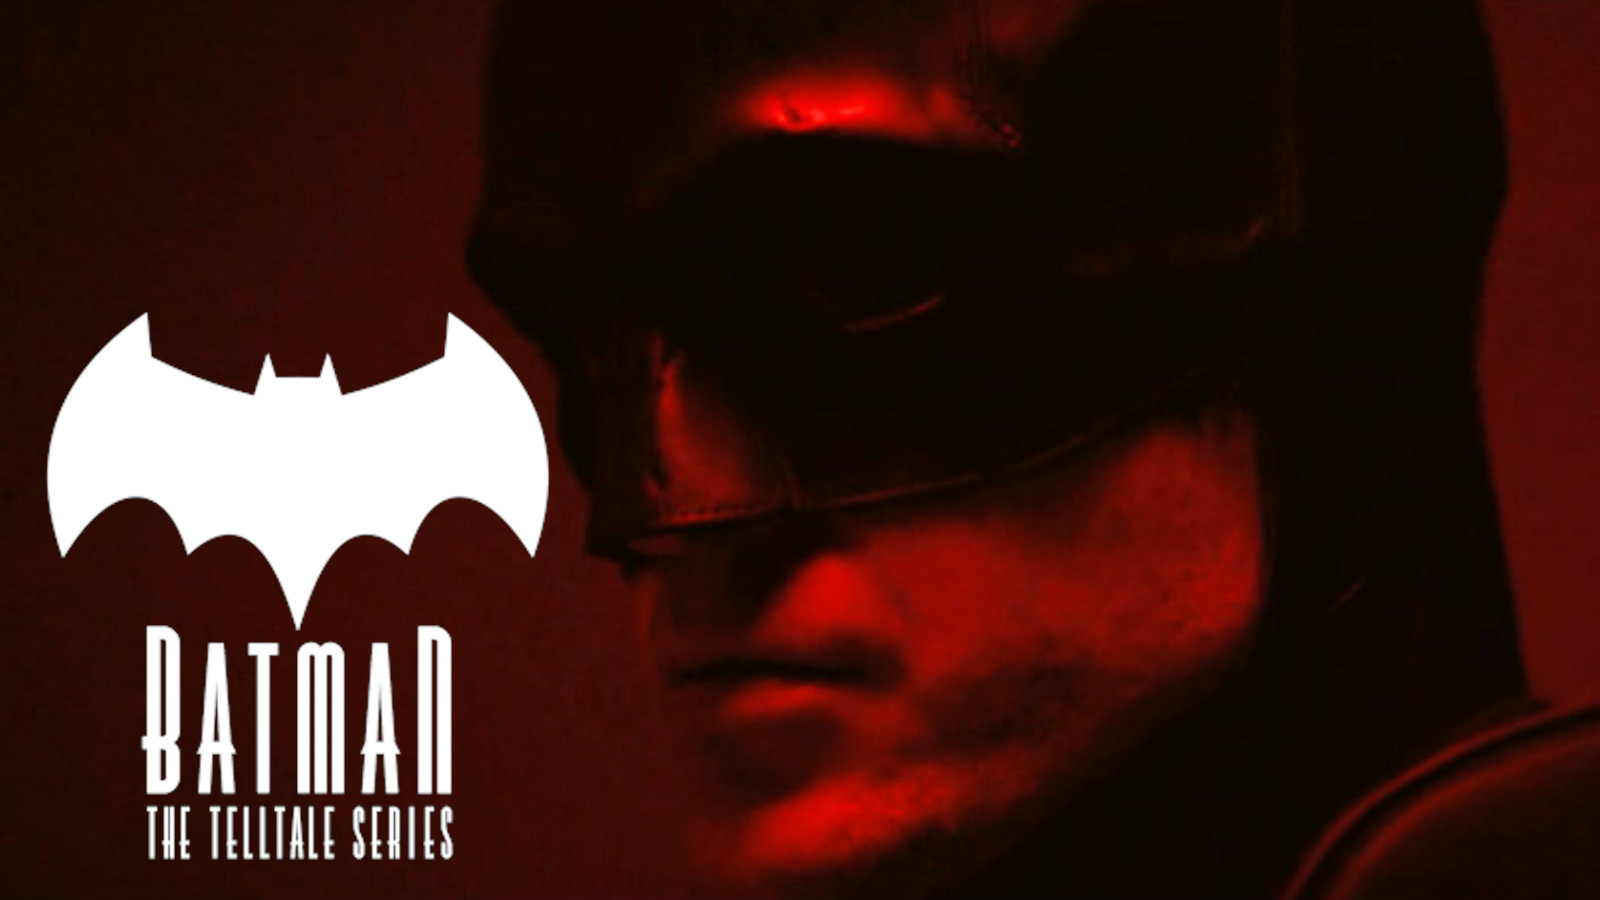 The Batman with Telltale logo